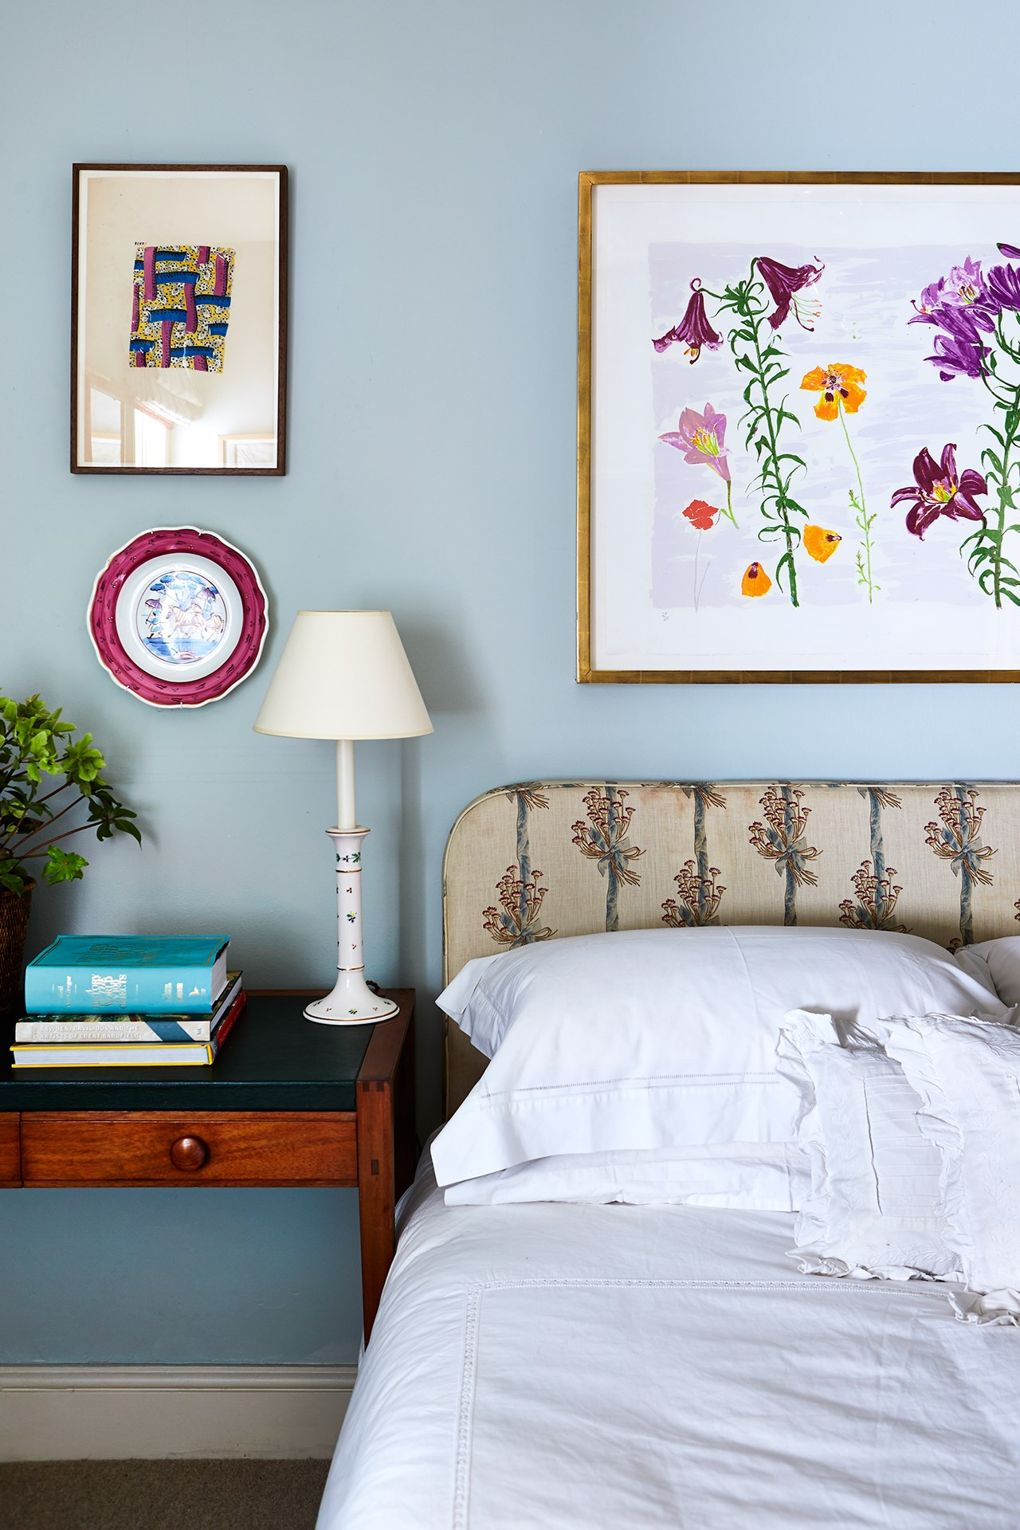 Décor Inspiration: Interior Designer Octavia Dickinson's South London Flat